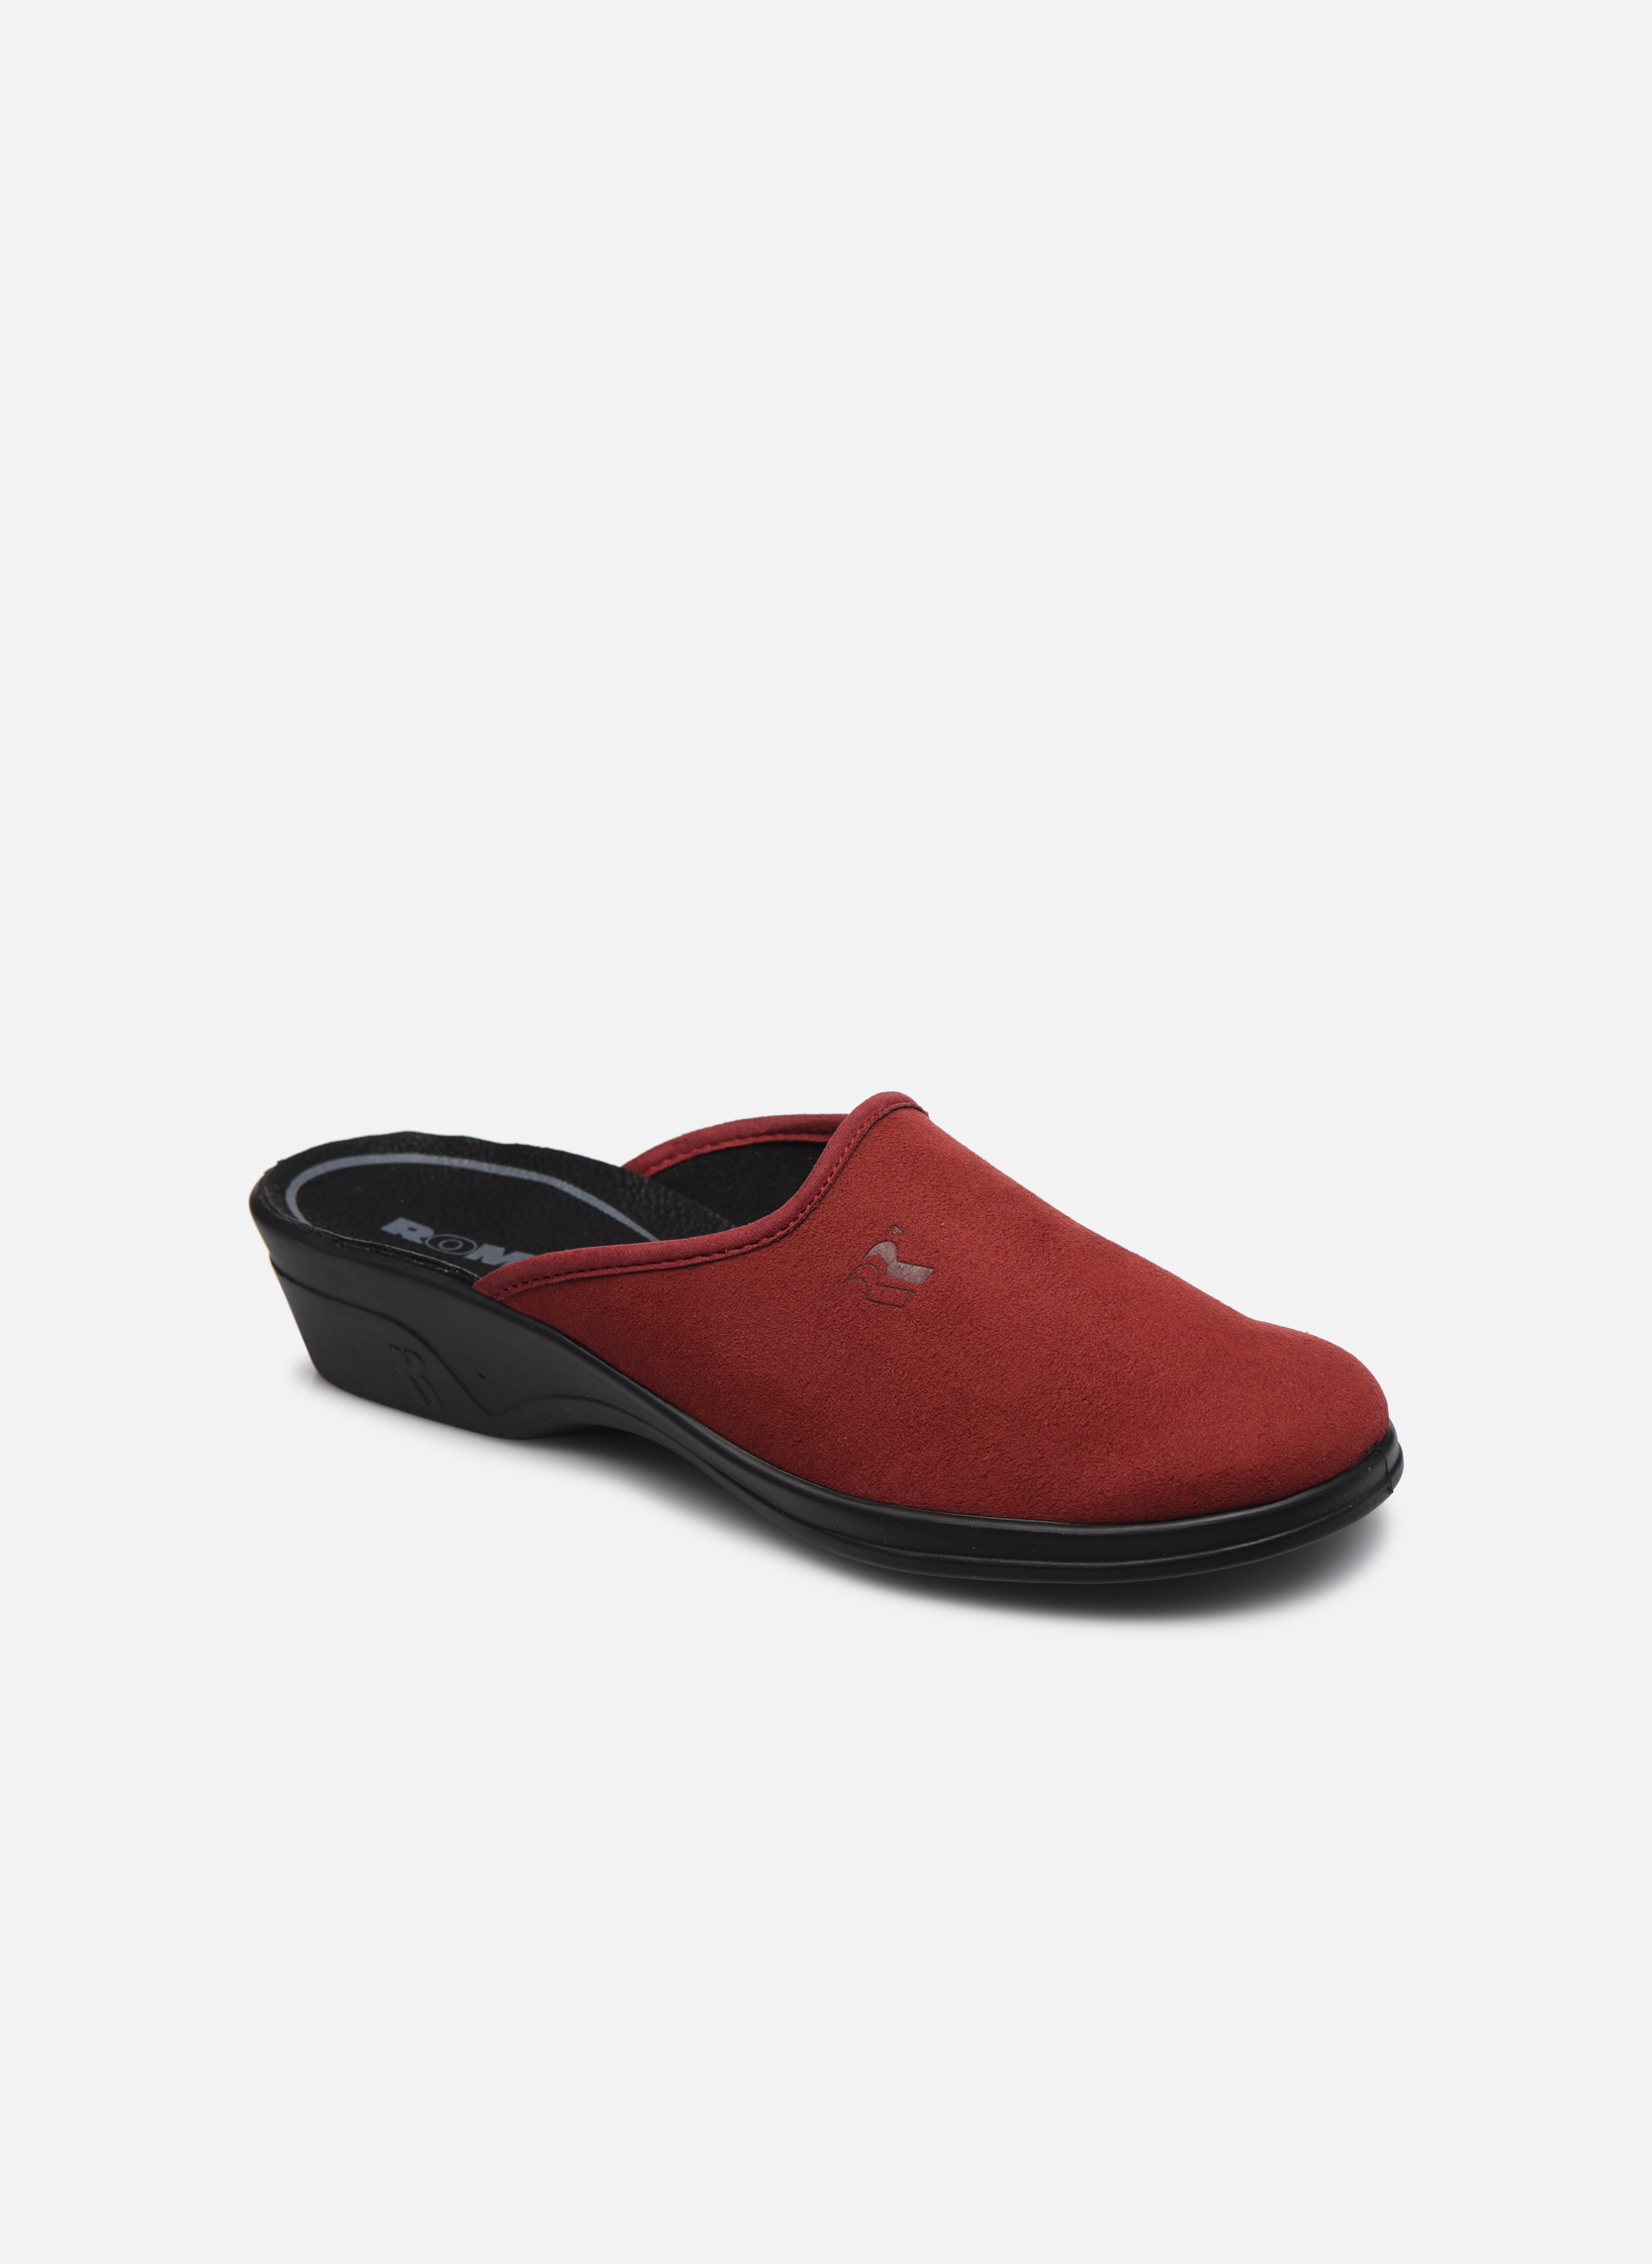 Remo 122 Rouge